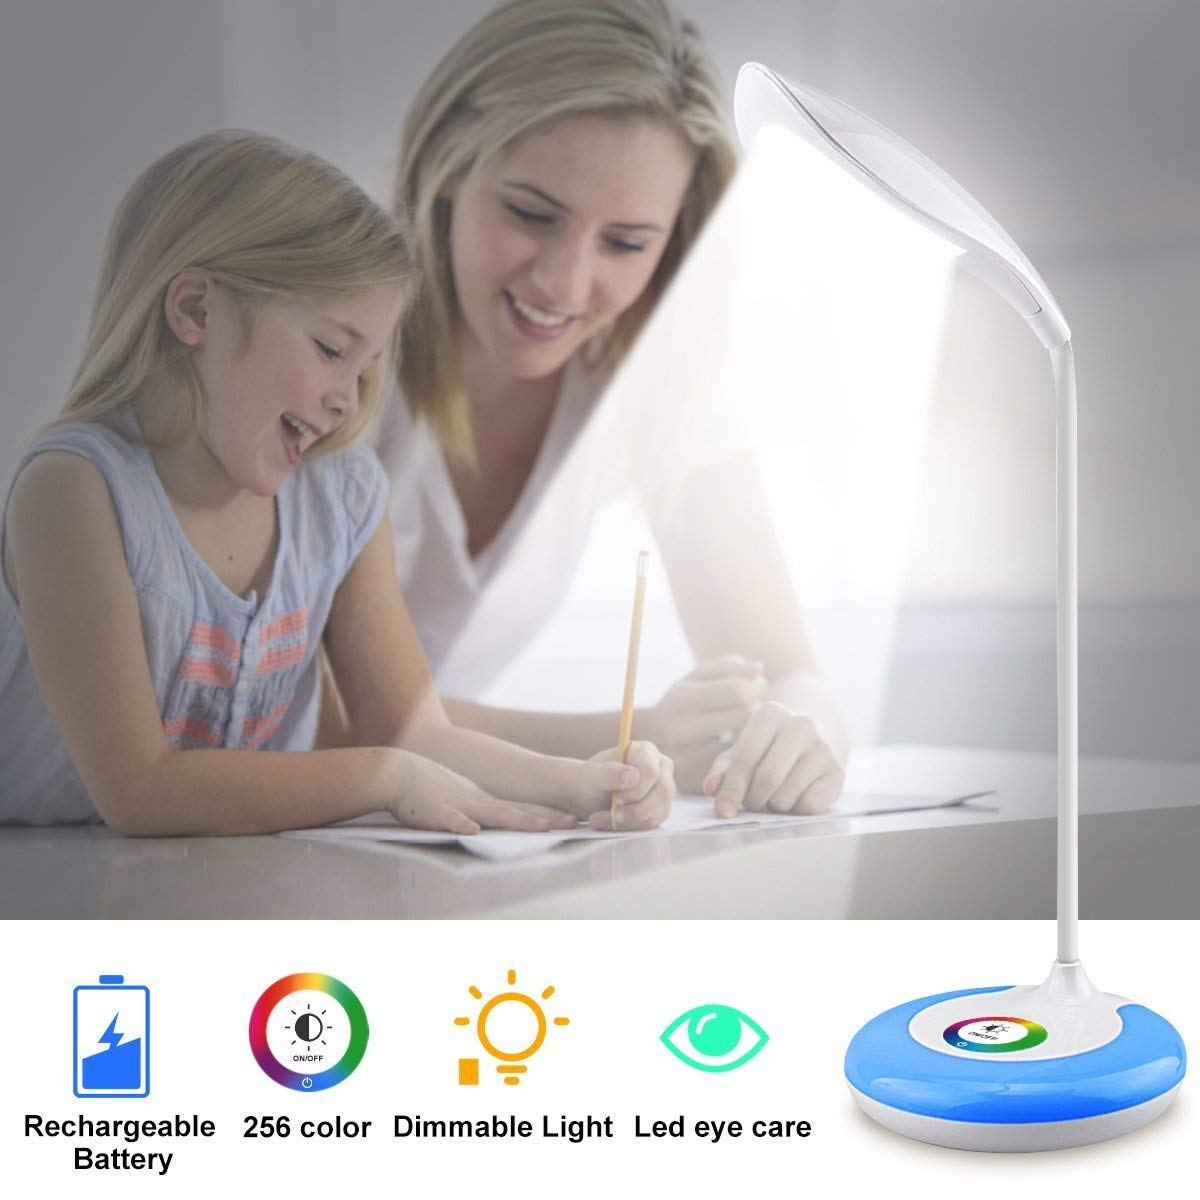 Led Table Lamps Lights & Lighting Reasonable A Variety Of Animation Cartoon Led Learning Nightlight Foldable Rechargeable Eye Care Home Bedroom Study Eye Care Lamp